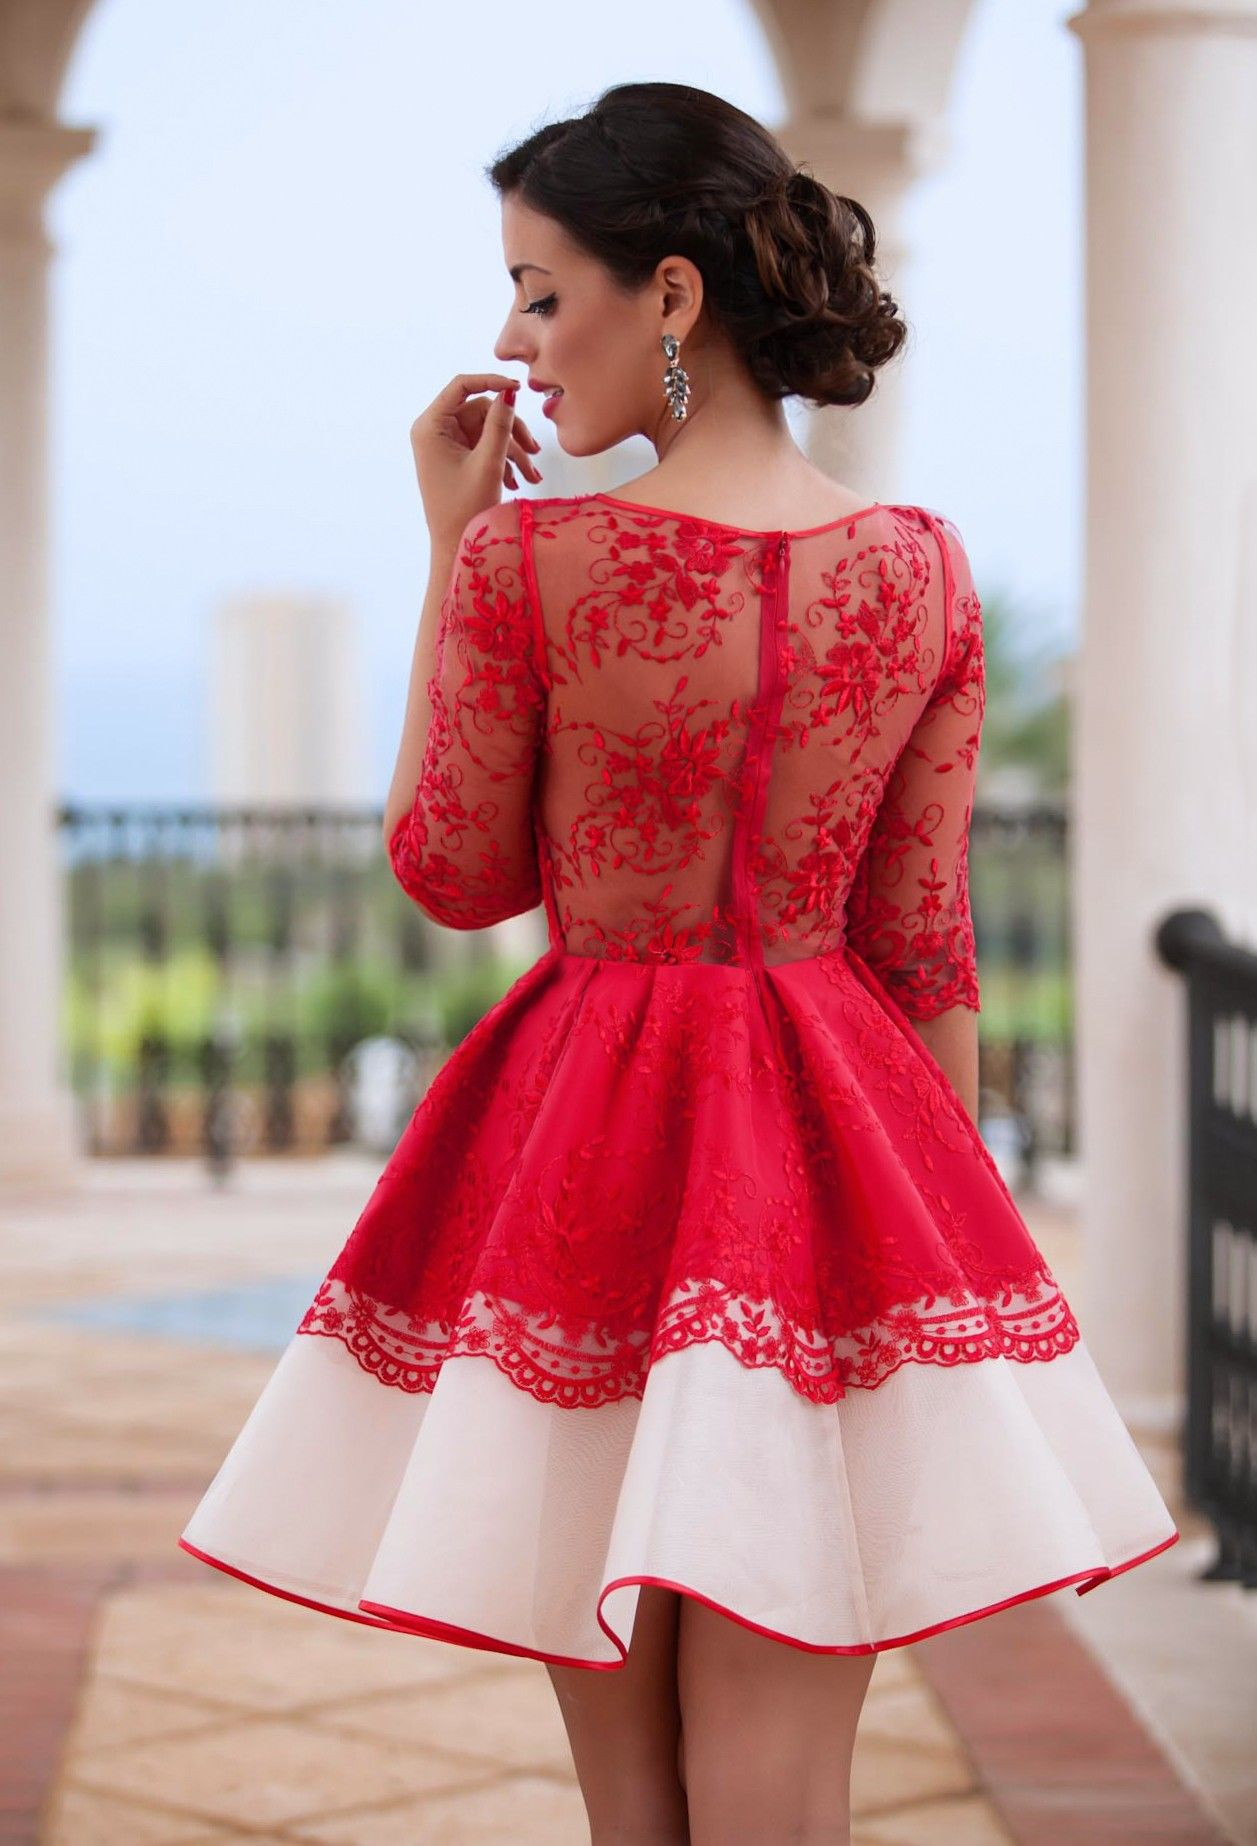 Elisabethg fashion pinterest red tops and dresses